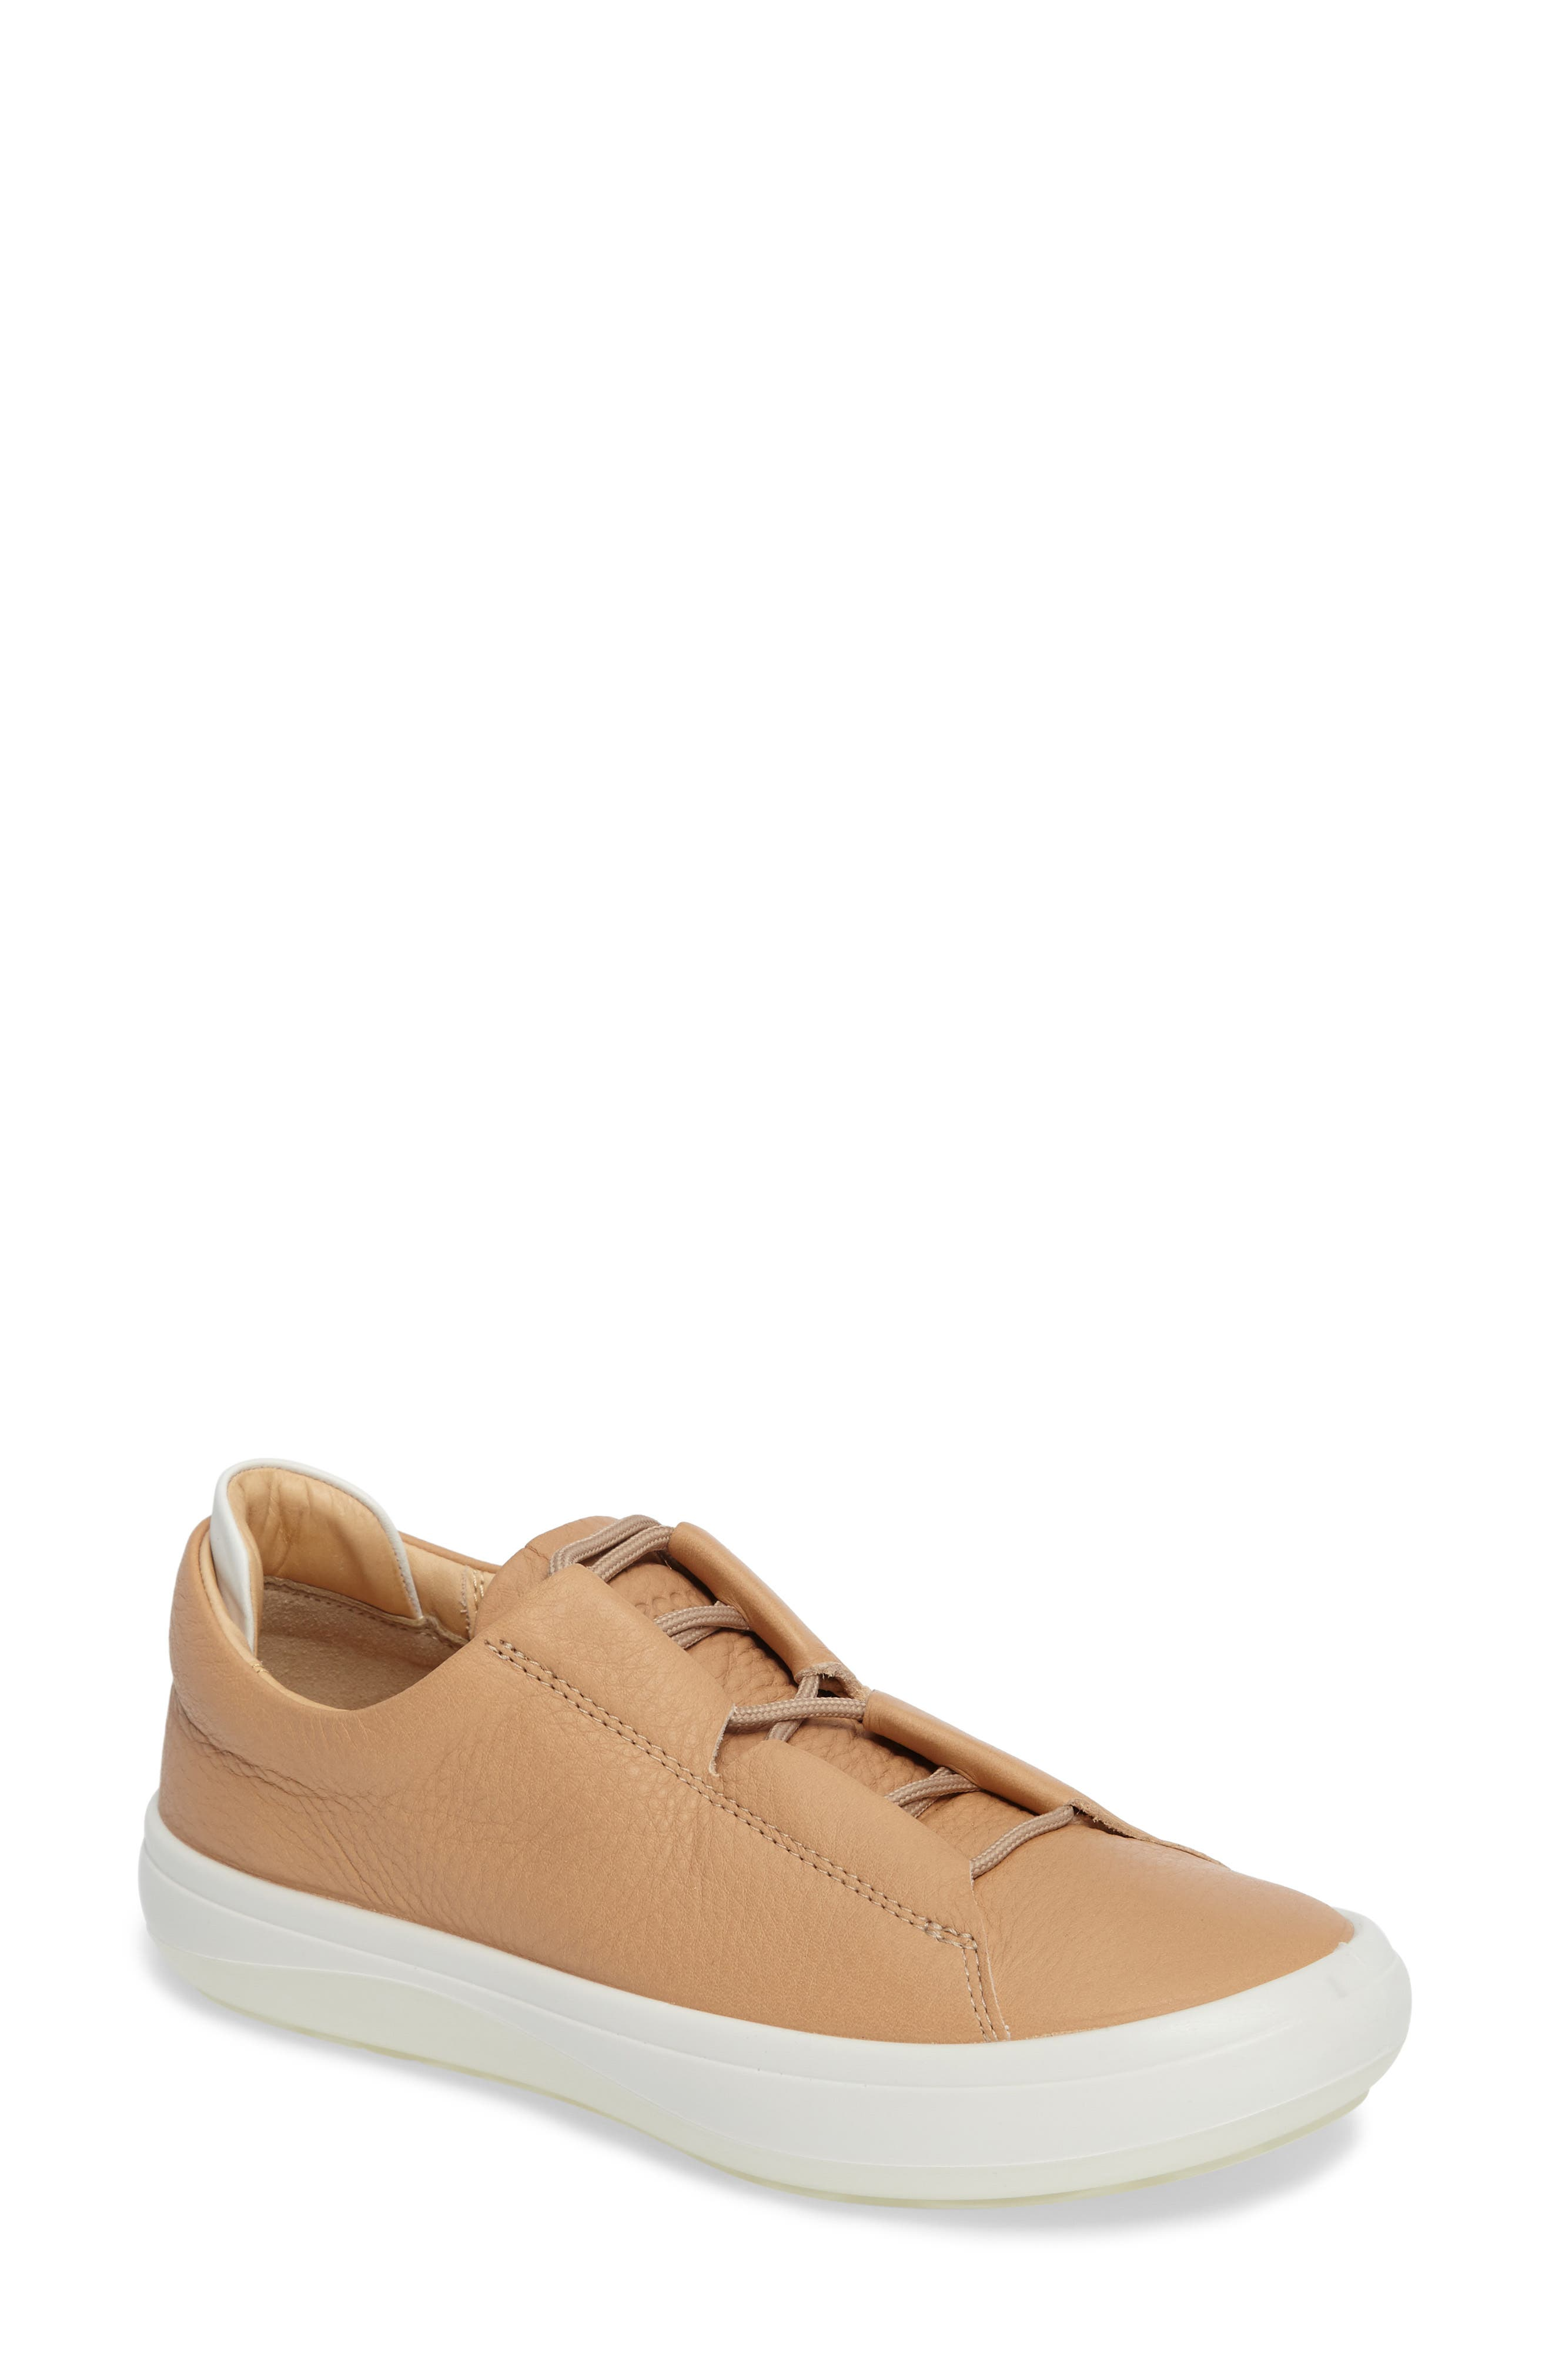 Kinhin Low Top Sneaker,                             Main thumbnail 1, color,                             Volluto Leather